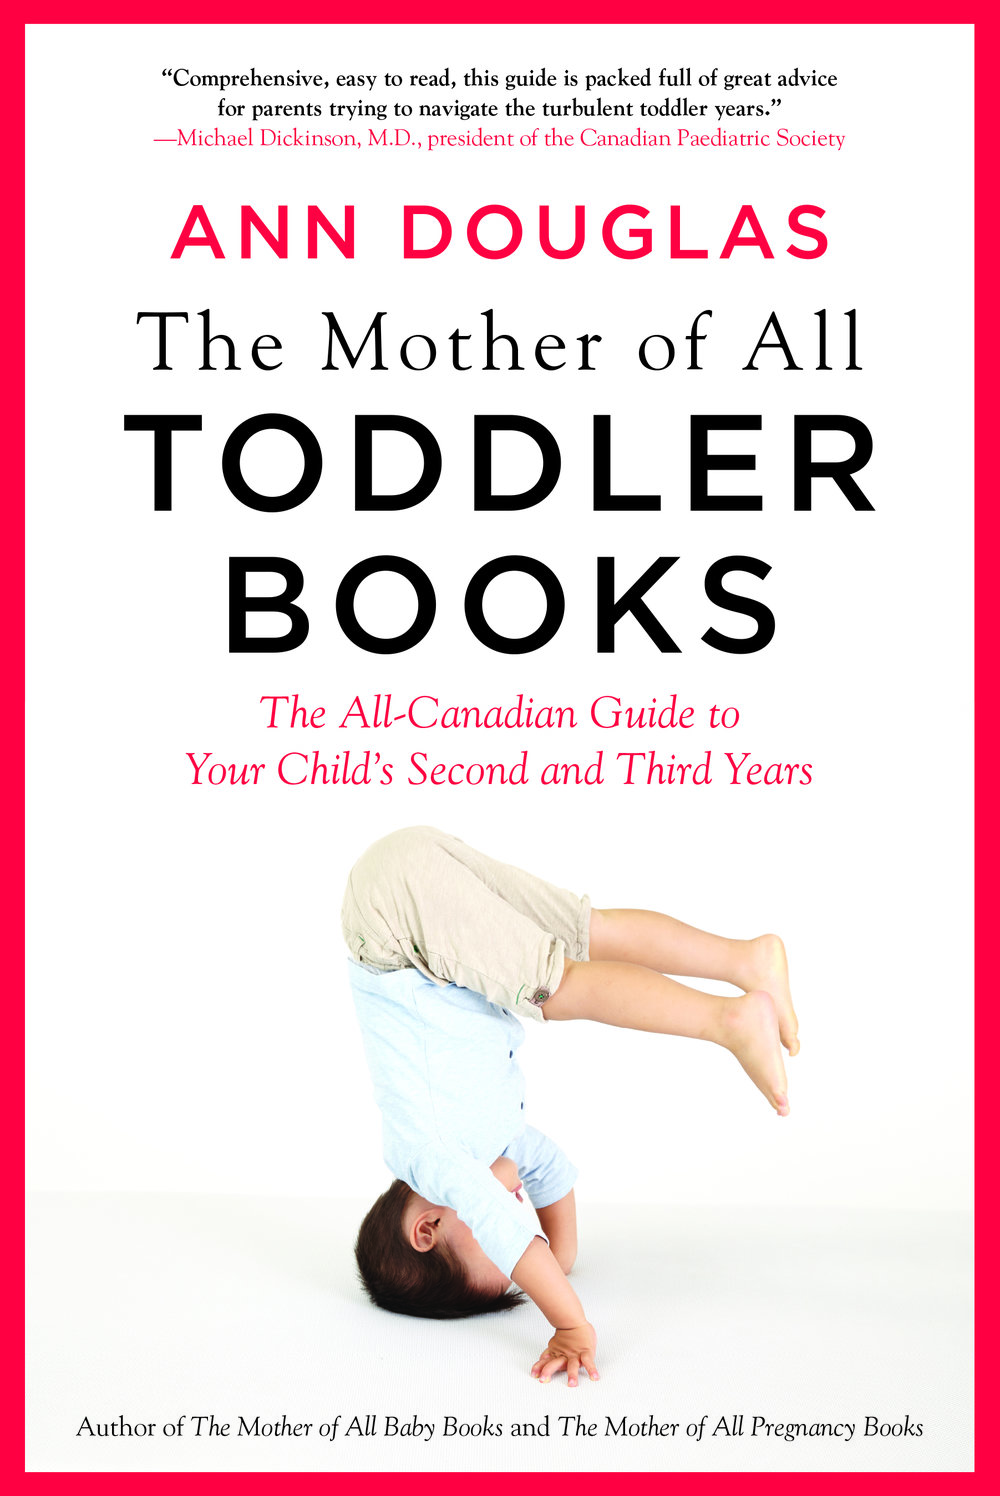 toddler-book.jpg